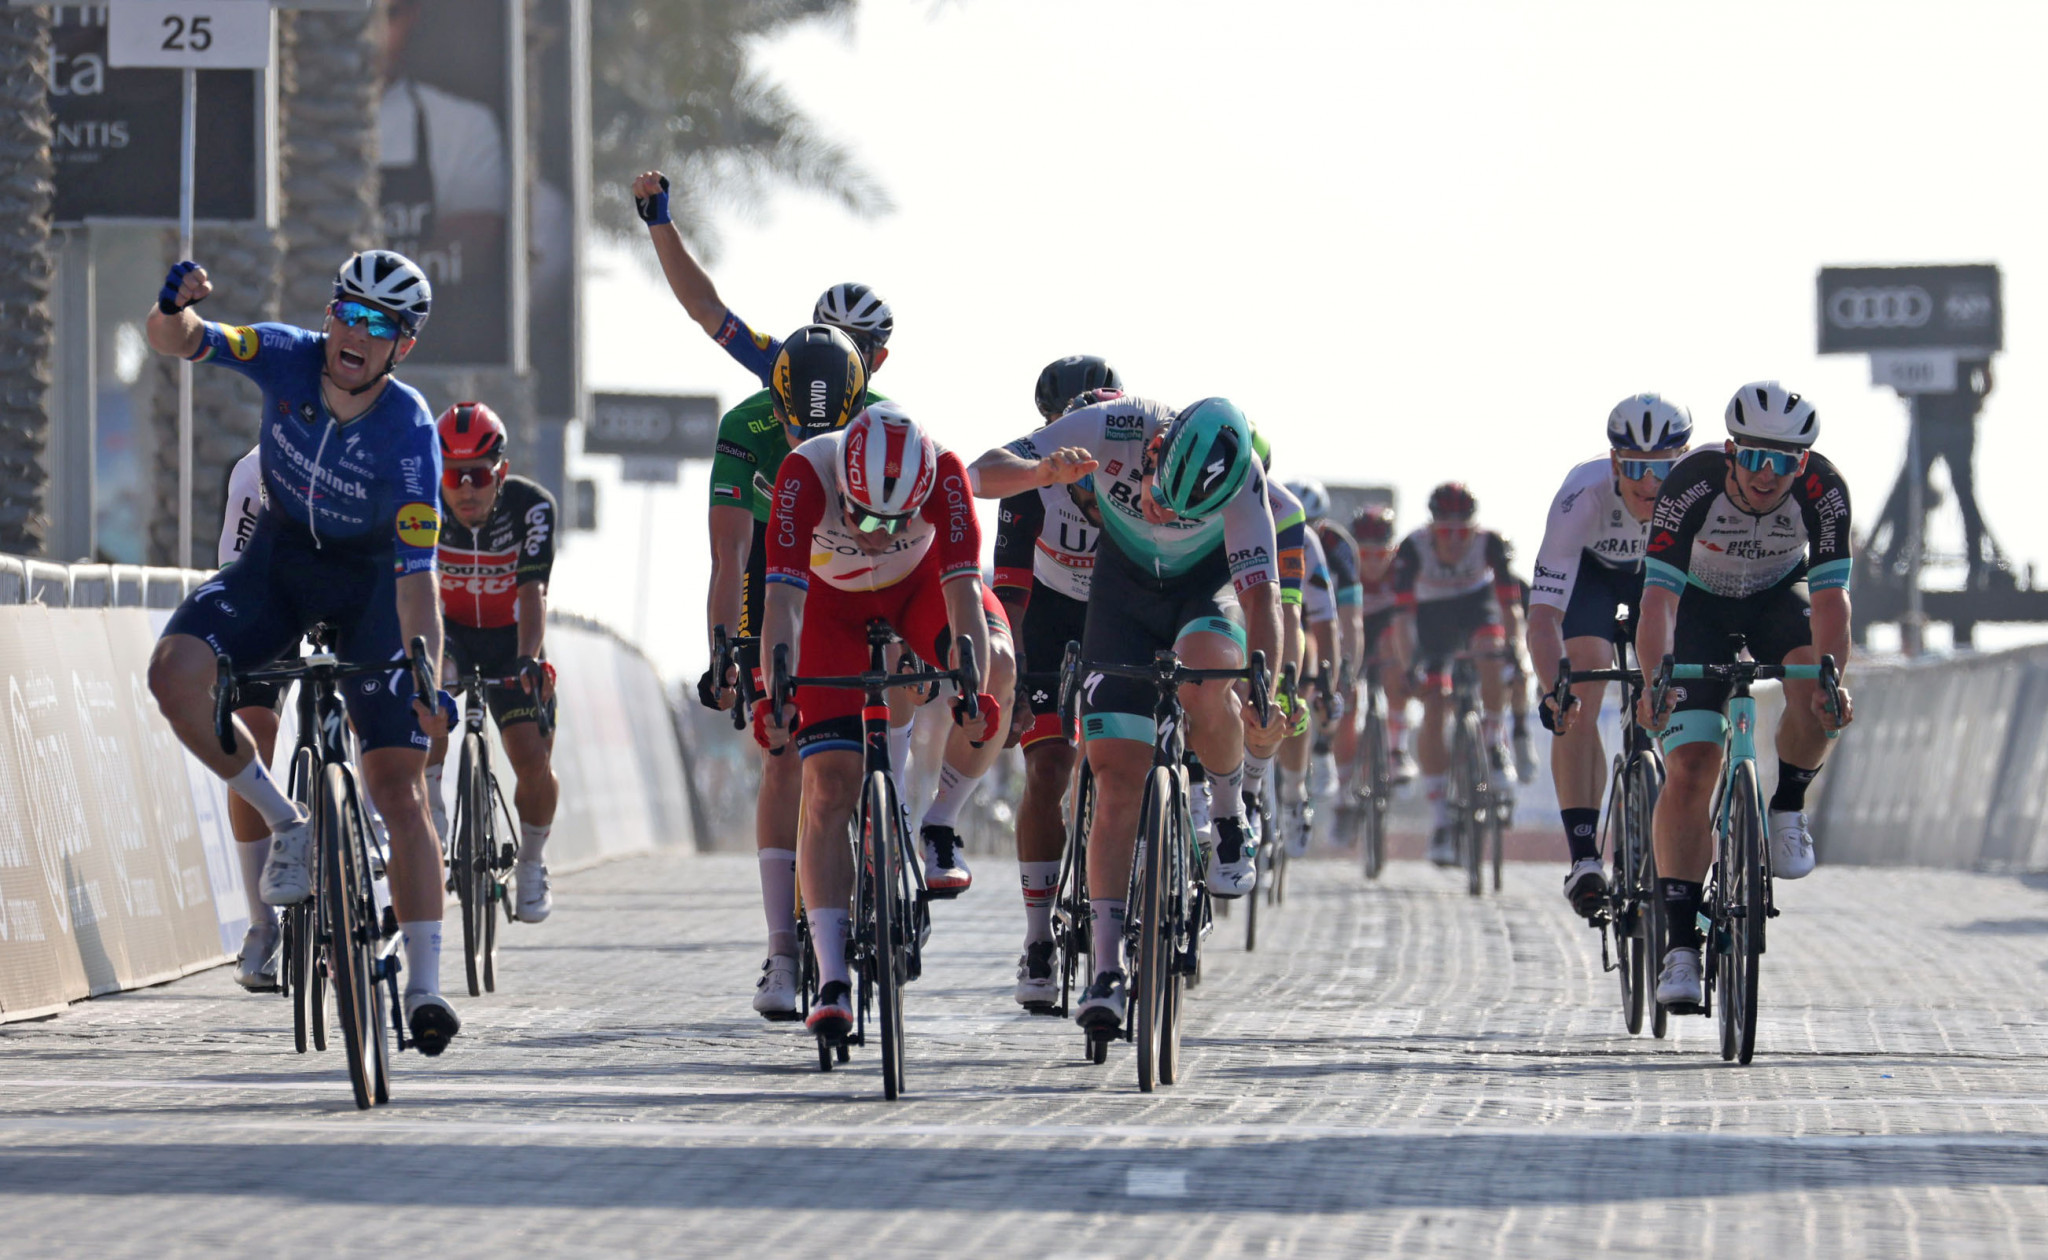 Bennett earns second stage win at UAE Tour in sprint finish